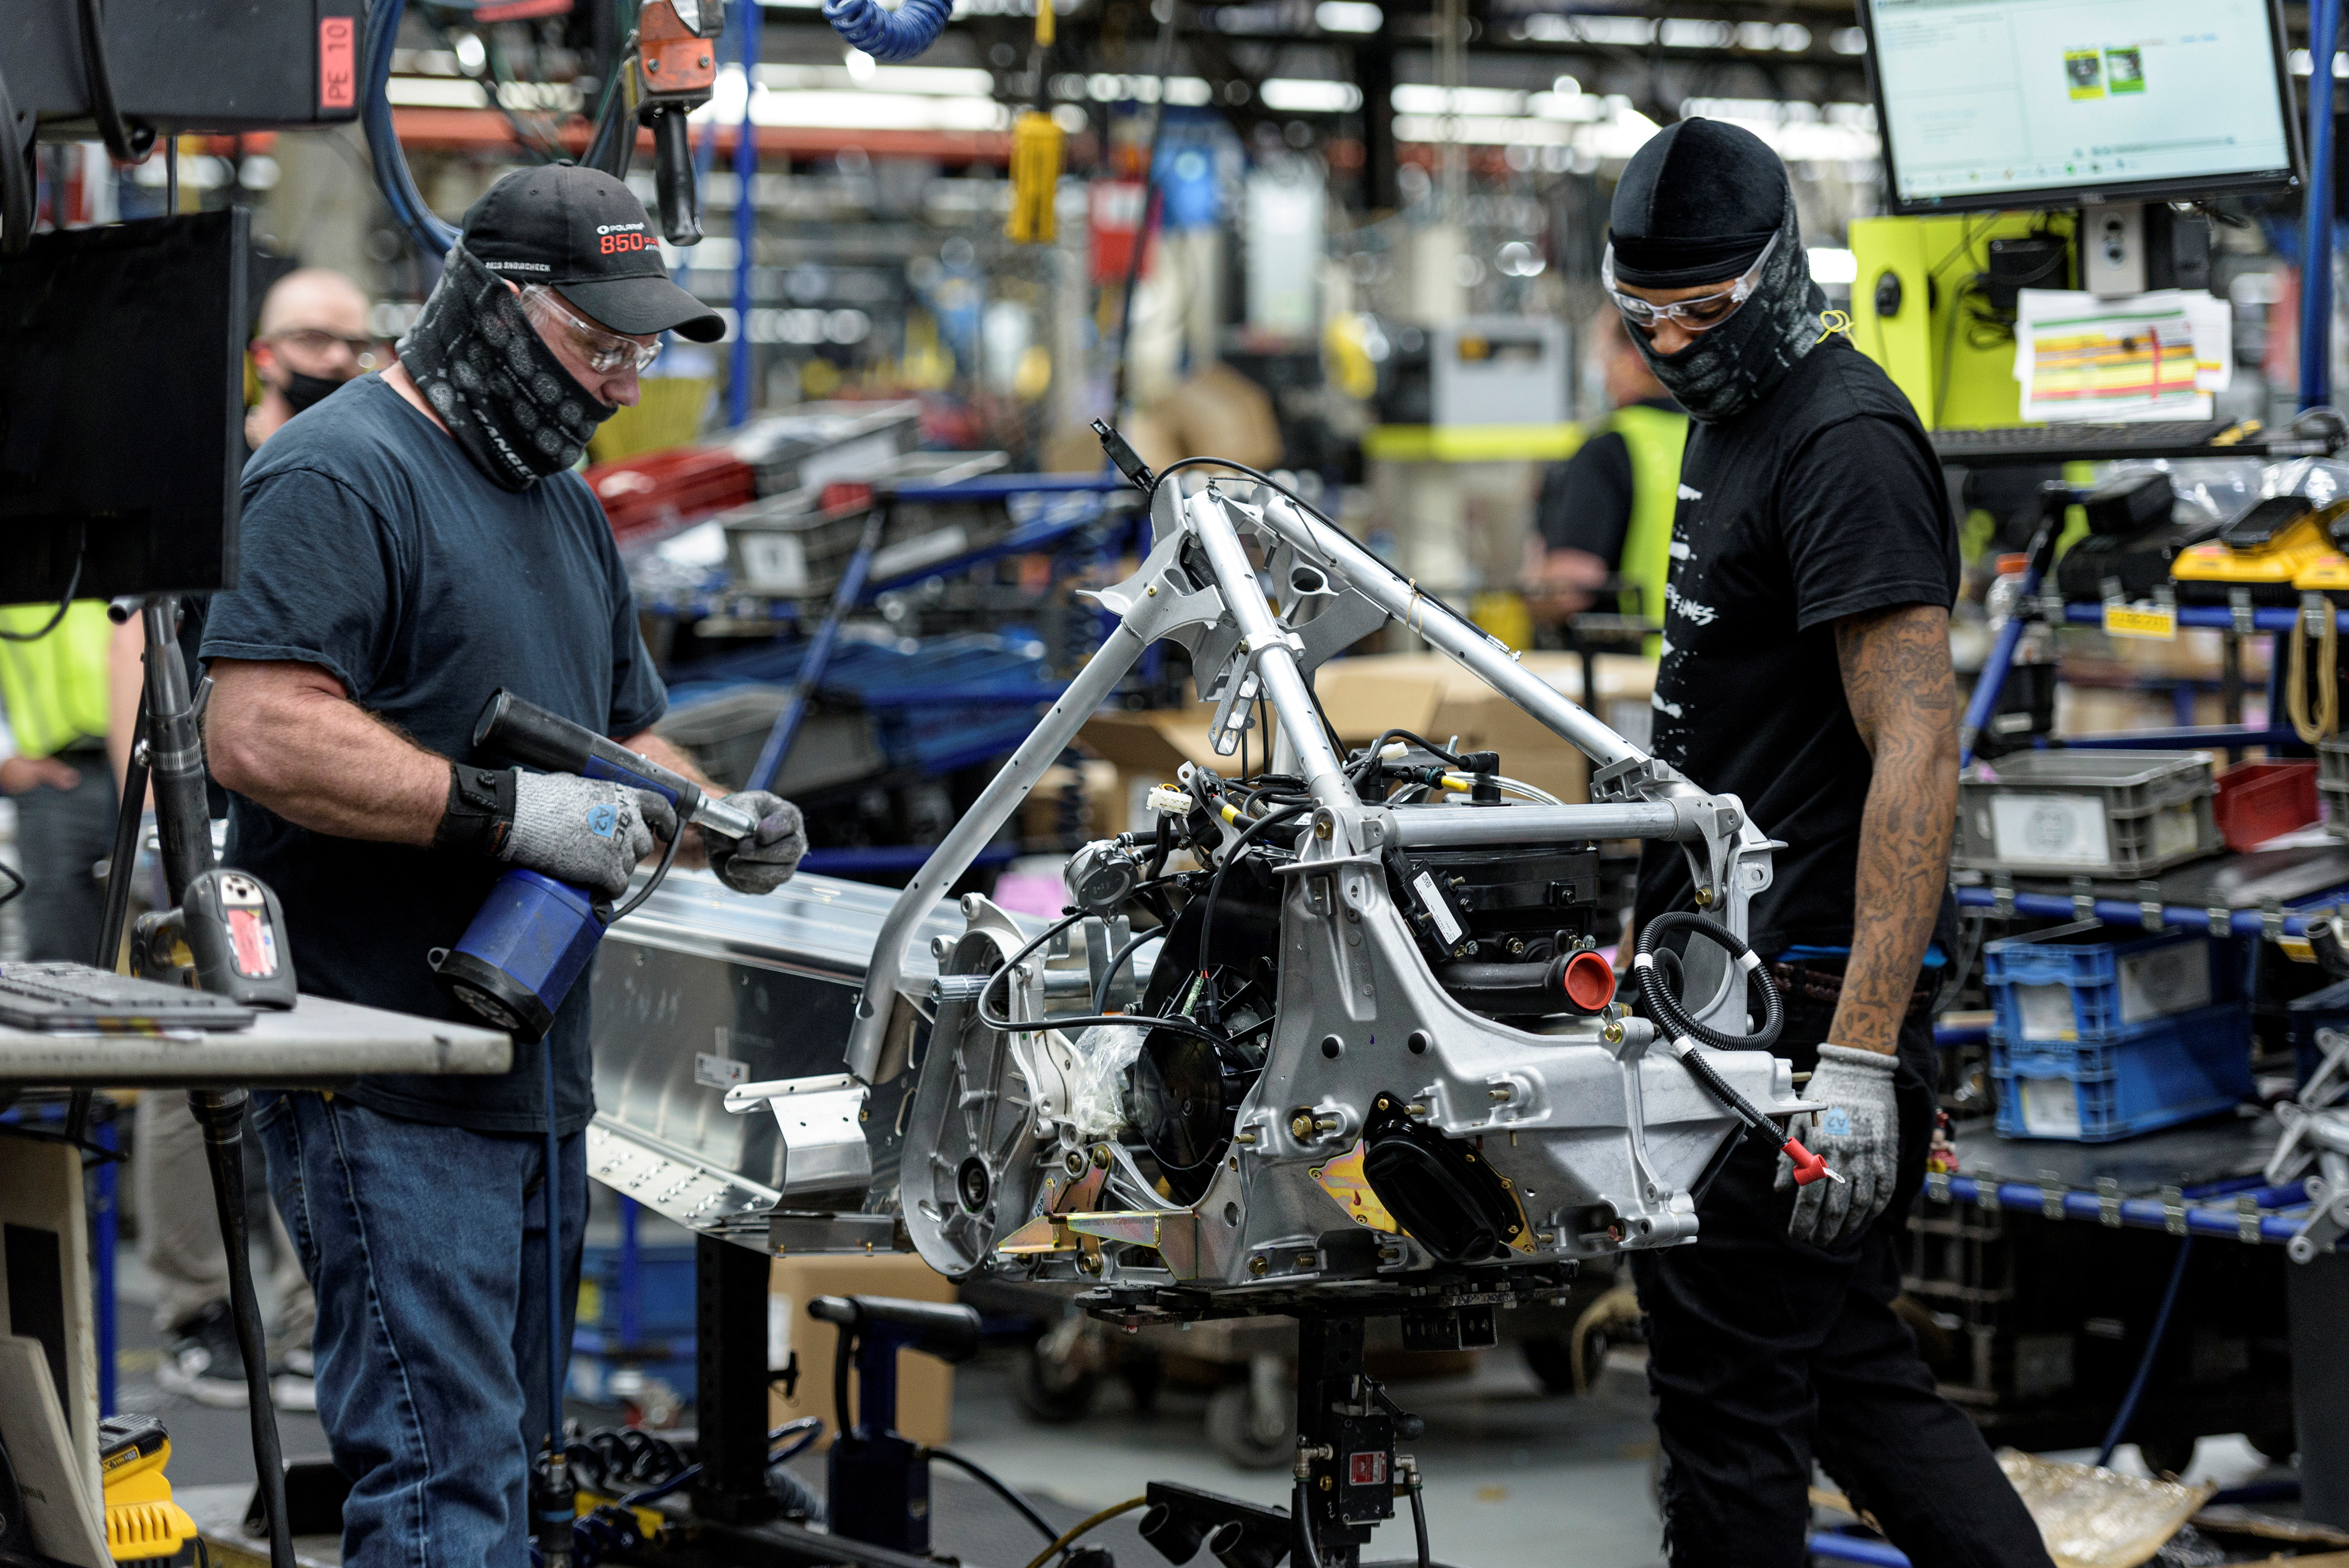 People work on a Polaris snowmobile assembly line at their manufacturing and assembly plant in Roseau, Minnesota, U.S. June 7, 2021. Picture taken June 7, 2021.  REUTERS/Dan Koeck